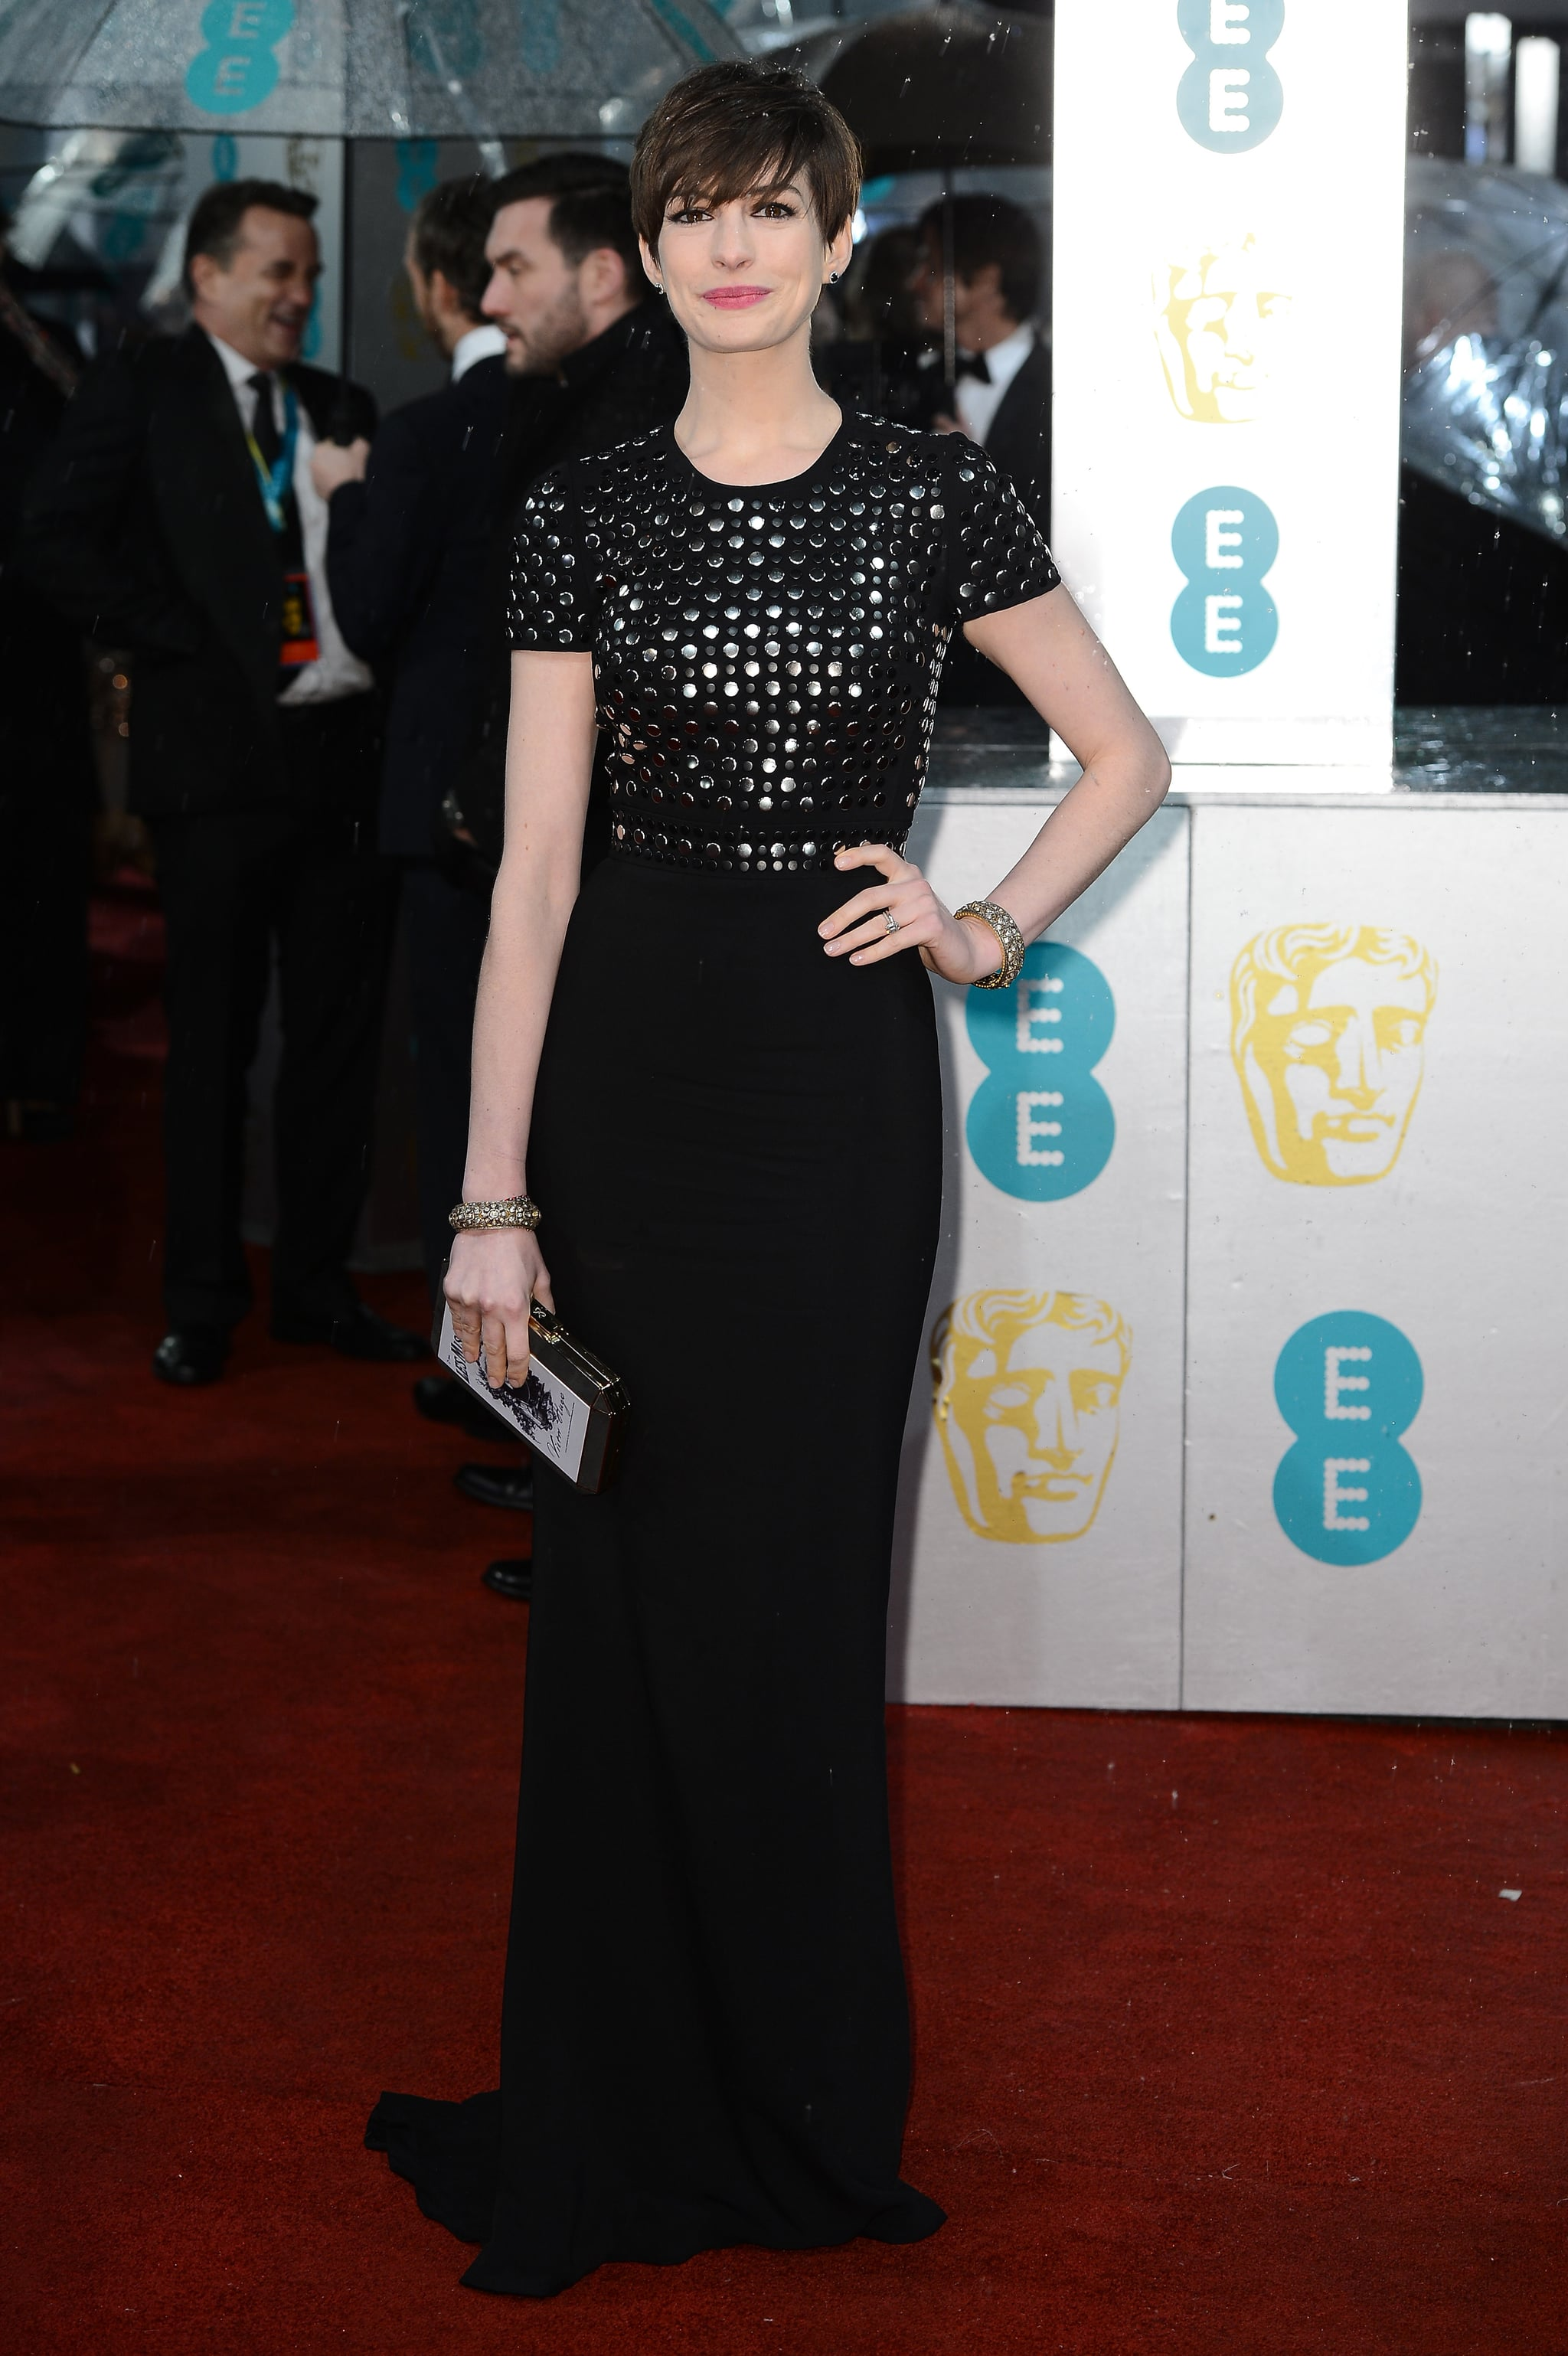 Anne Hathaway donned Burberry for the BAFTA Awards.